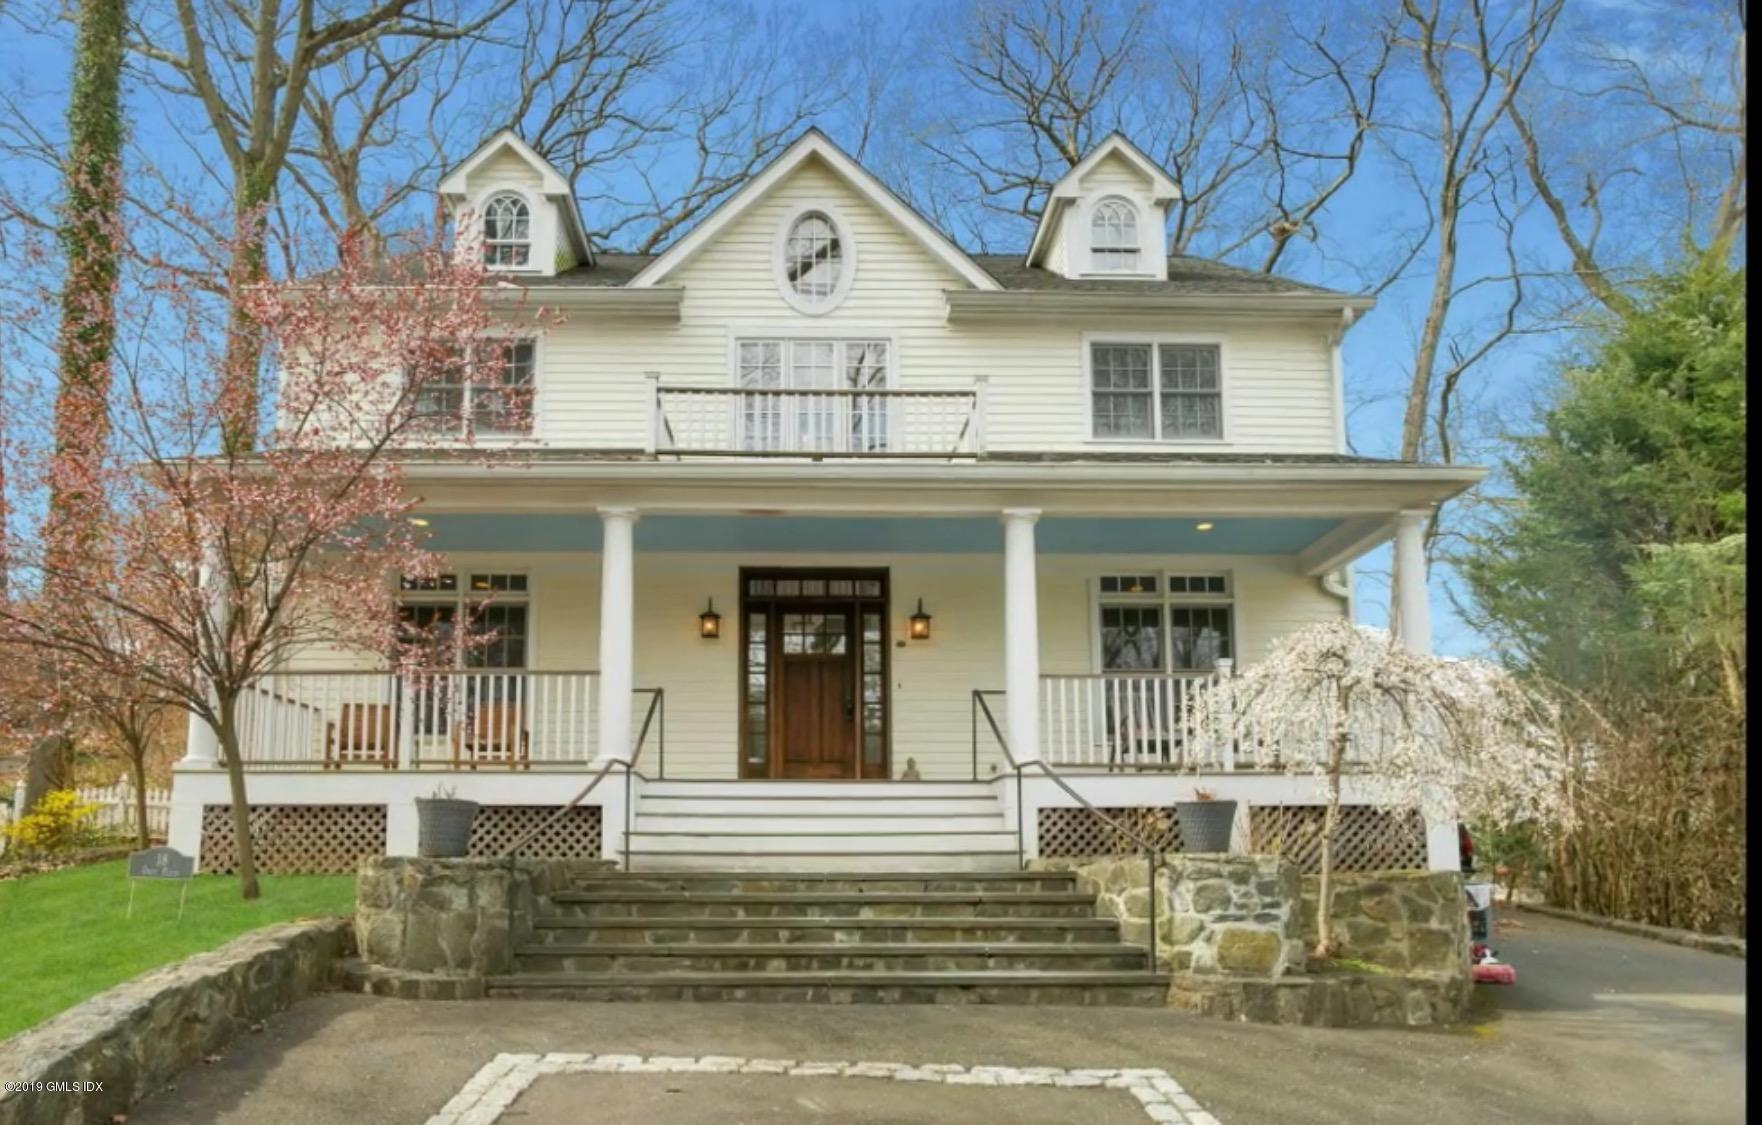 18 Osee Place,Cos Cob,Connecticut 06807,5 Bedrooms Bedrooms,5 BathroomsBathrooms,Single family,Osee,105379